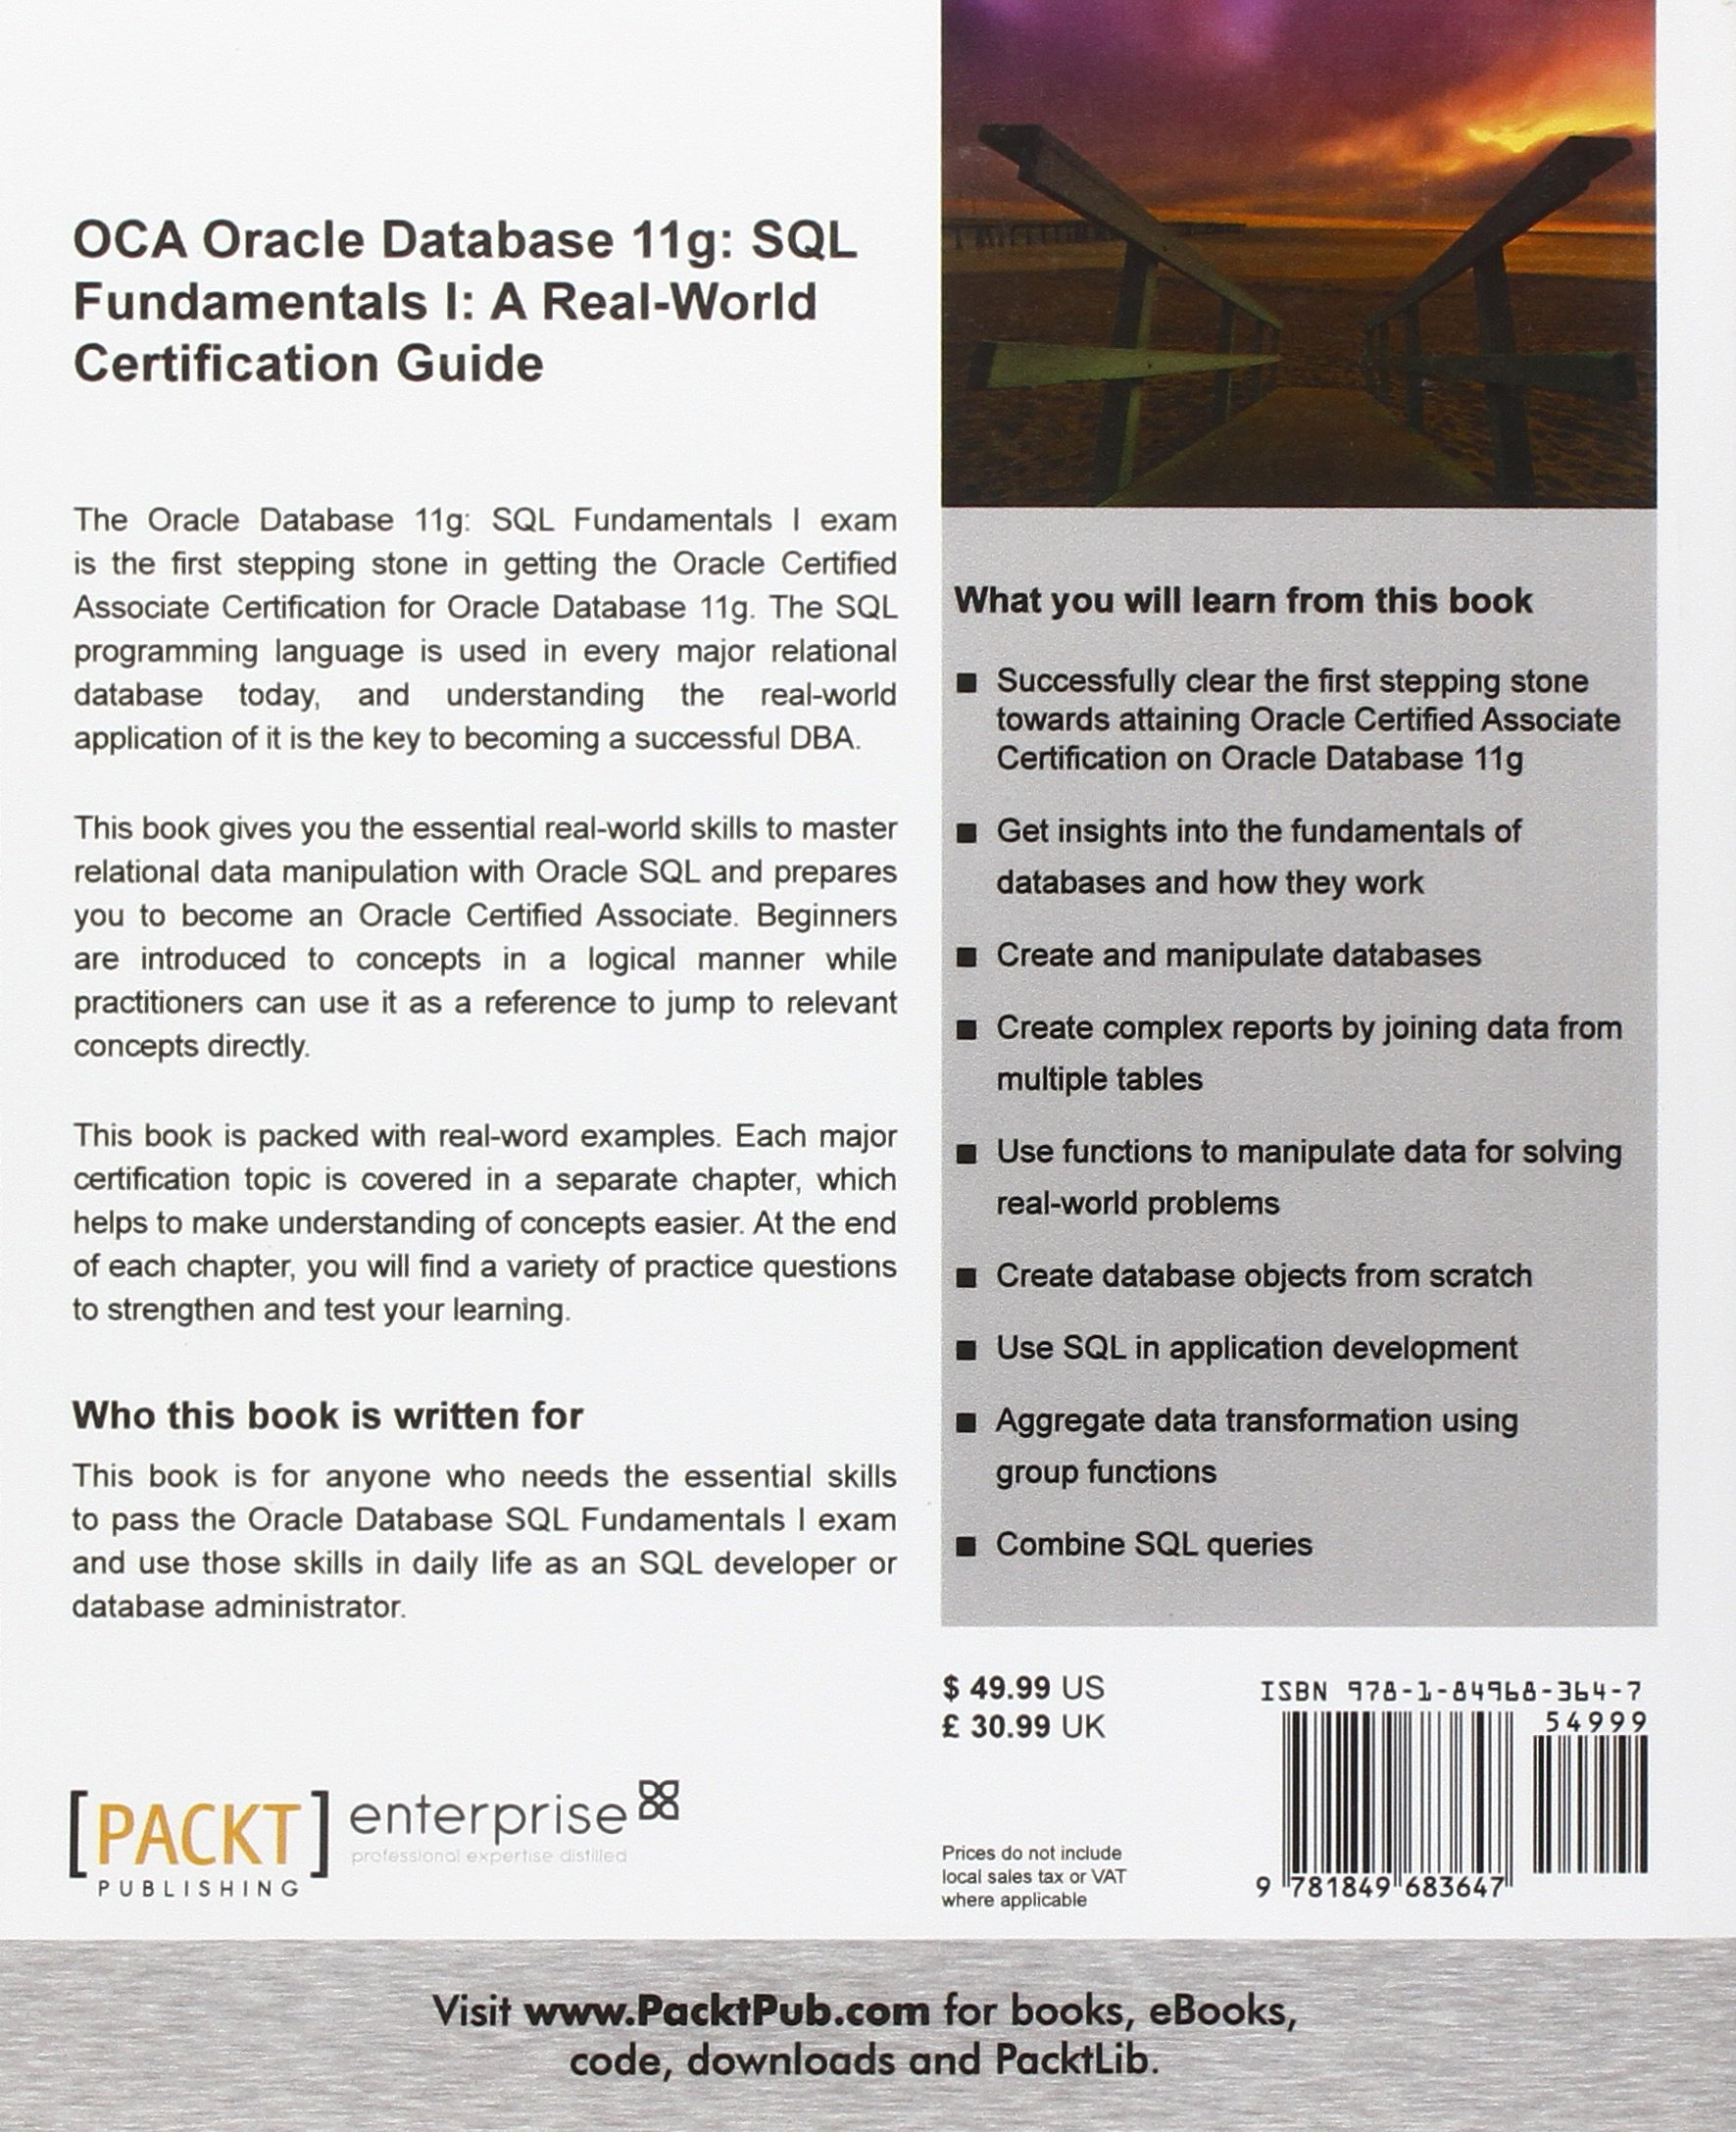 Oca oracle database 11g sql fundamentals i a real world oca oracle database 11g sql fundamentals i a real world certification guide 1zo 051 steve ries 9781849683647 amazon books 1betcityfo Gallery